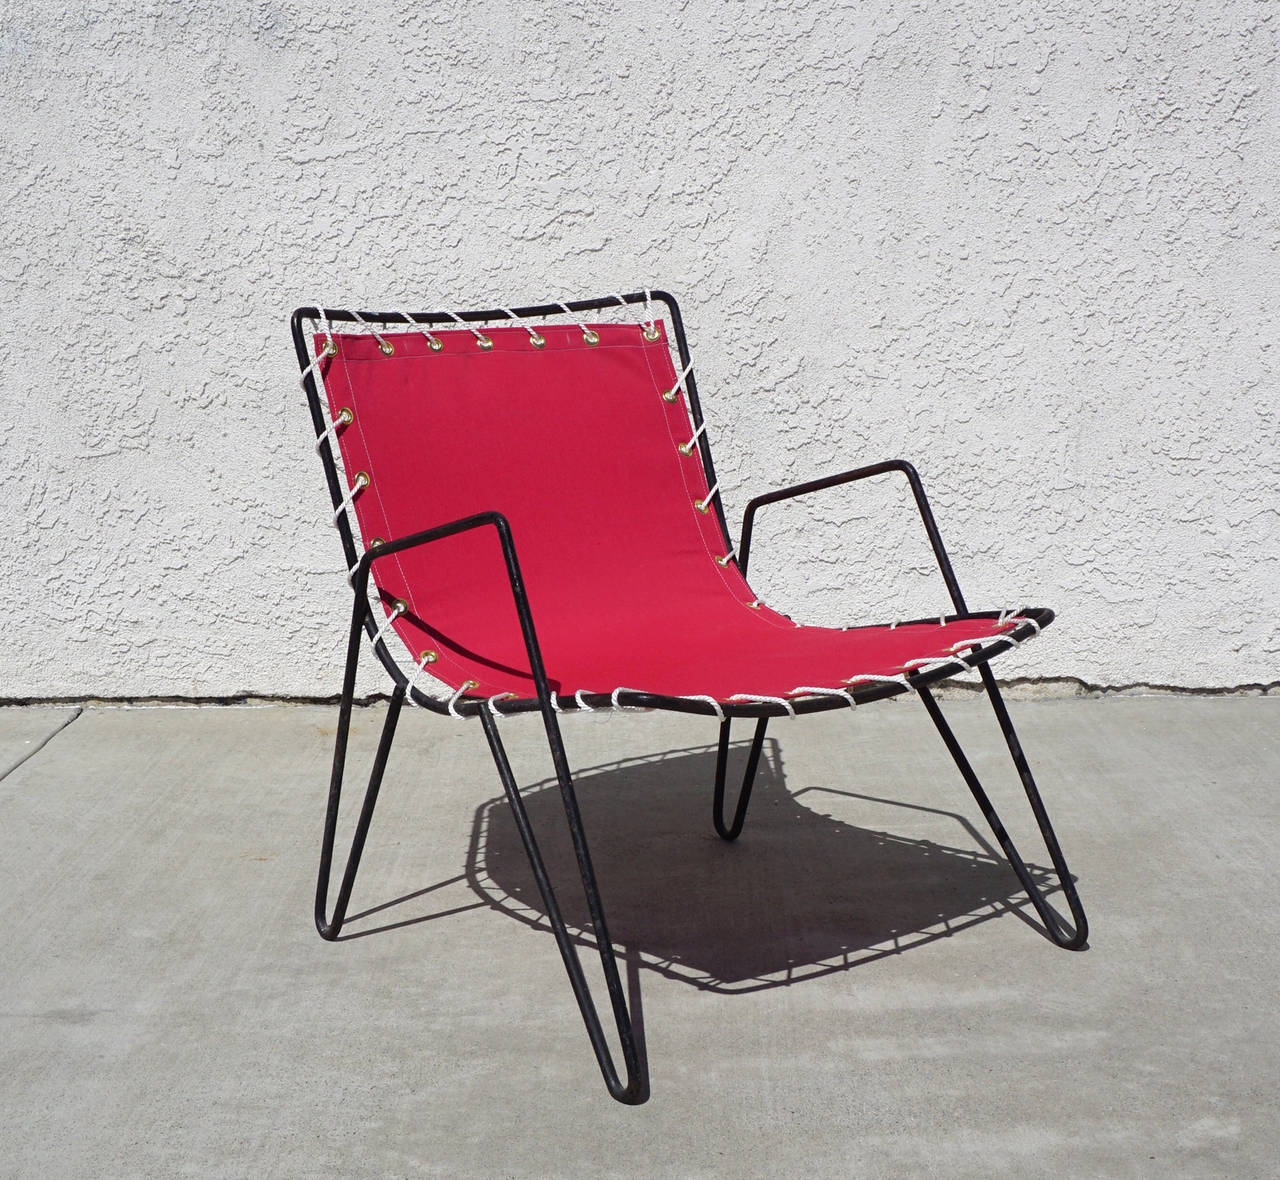 Canvas Patio Sling Chairs With Regard To Most Current 1950s Iron And Canvas Outdoor Sling Chairs At 1stdibs (View 25 of 25)